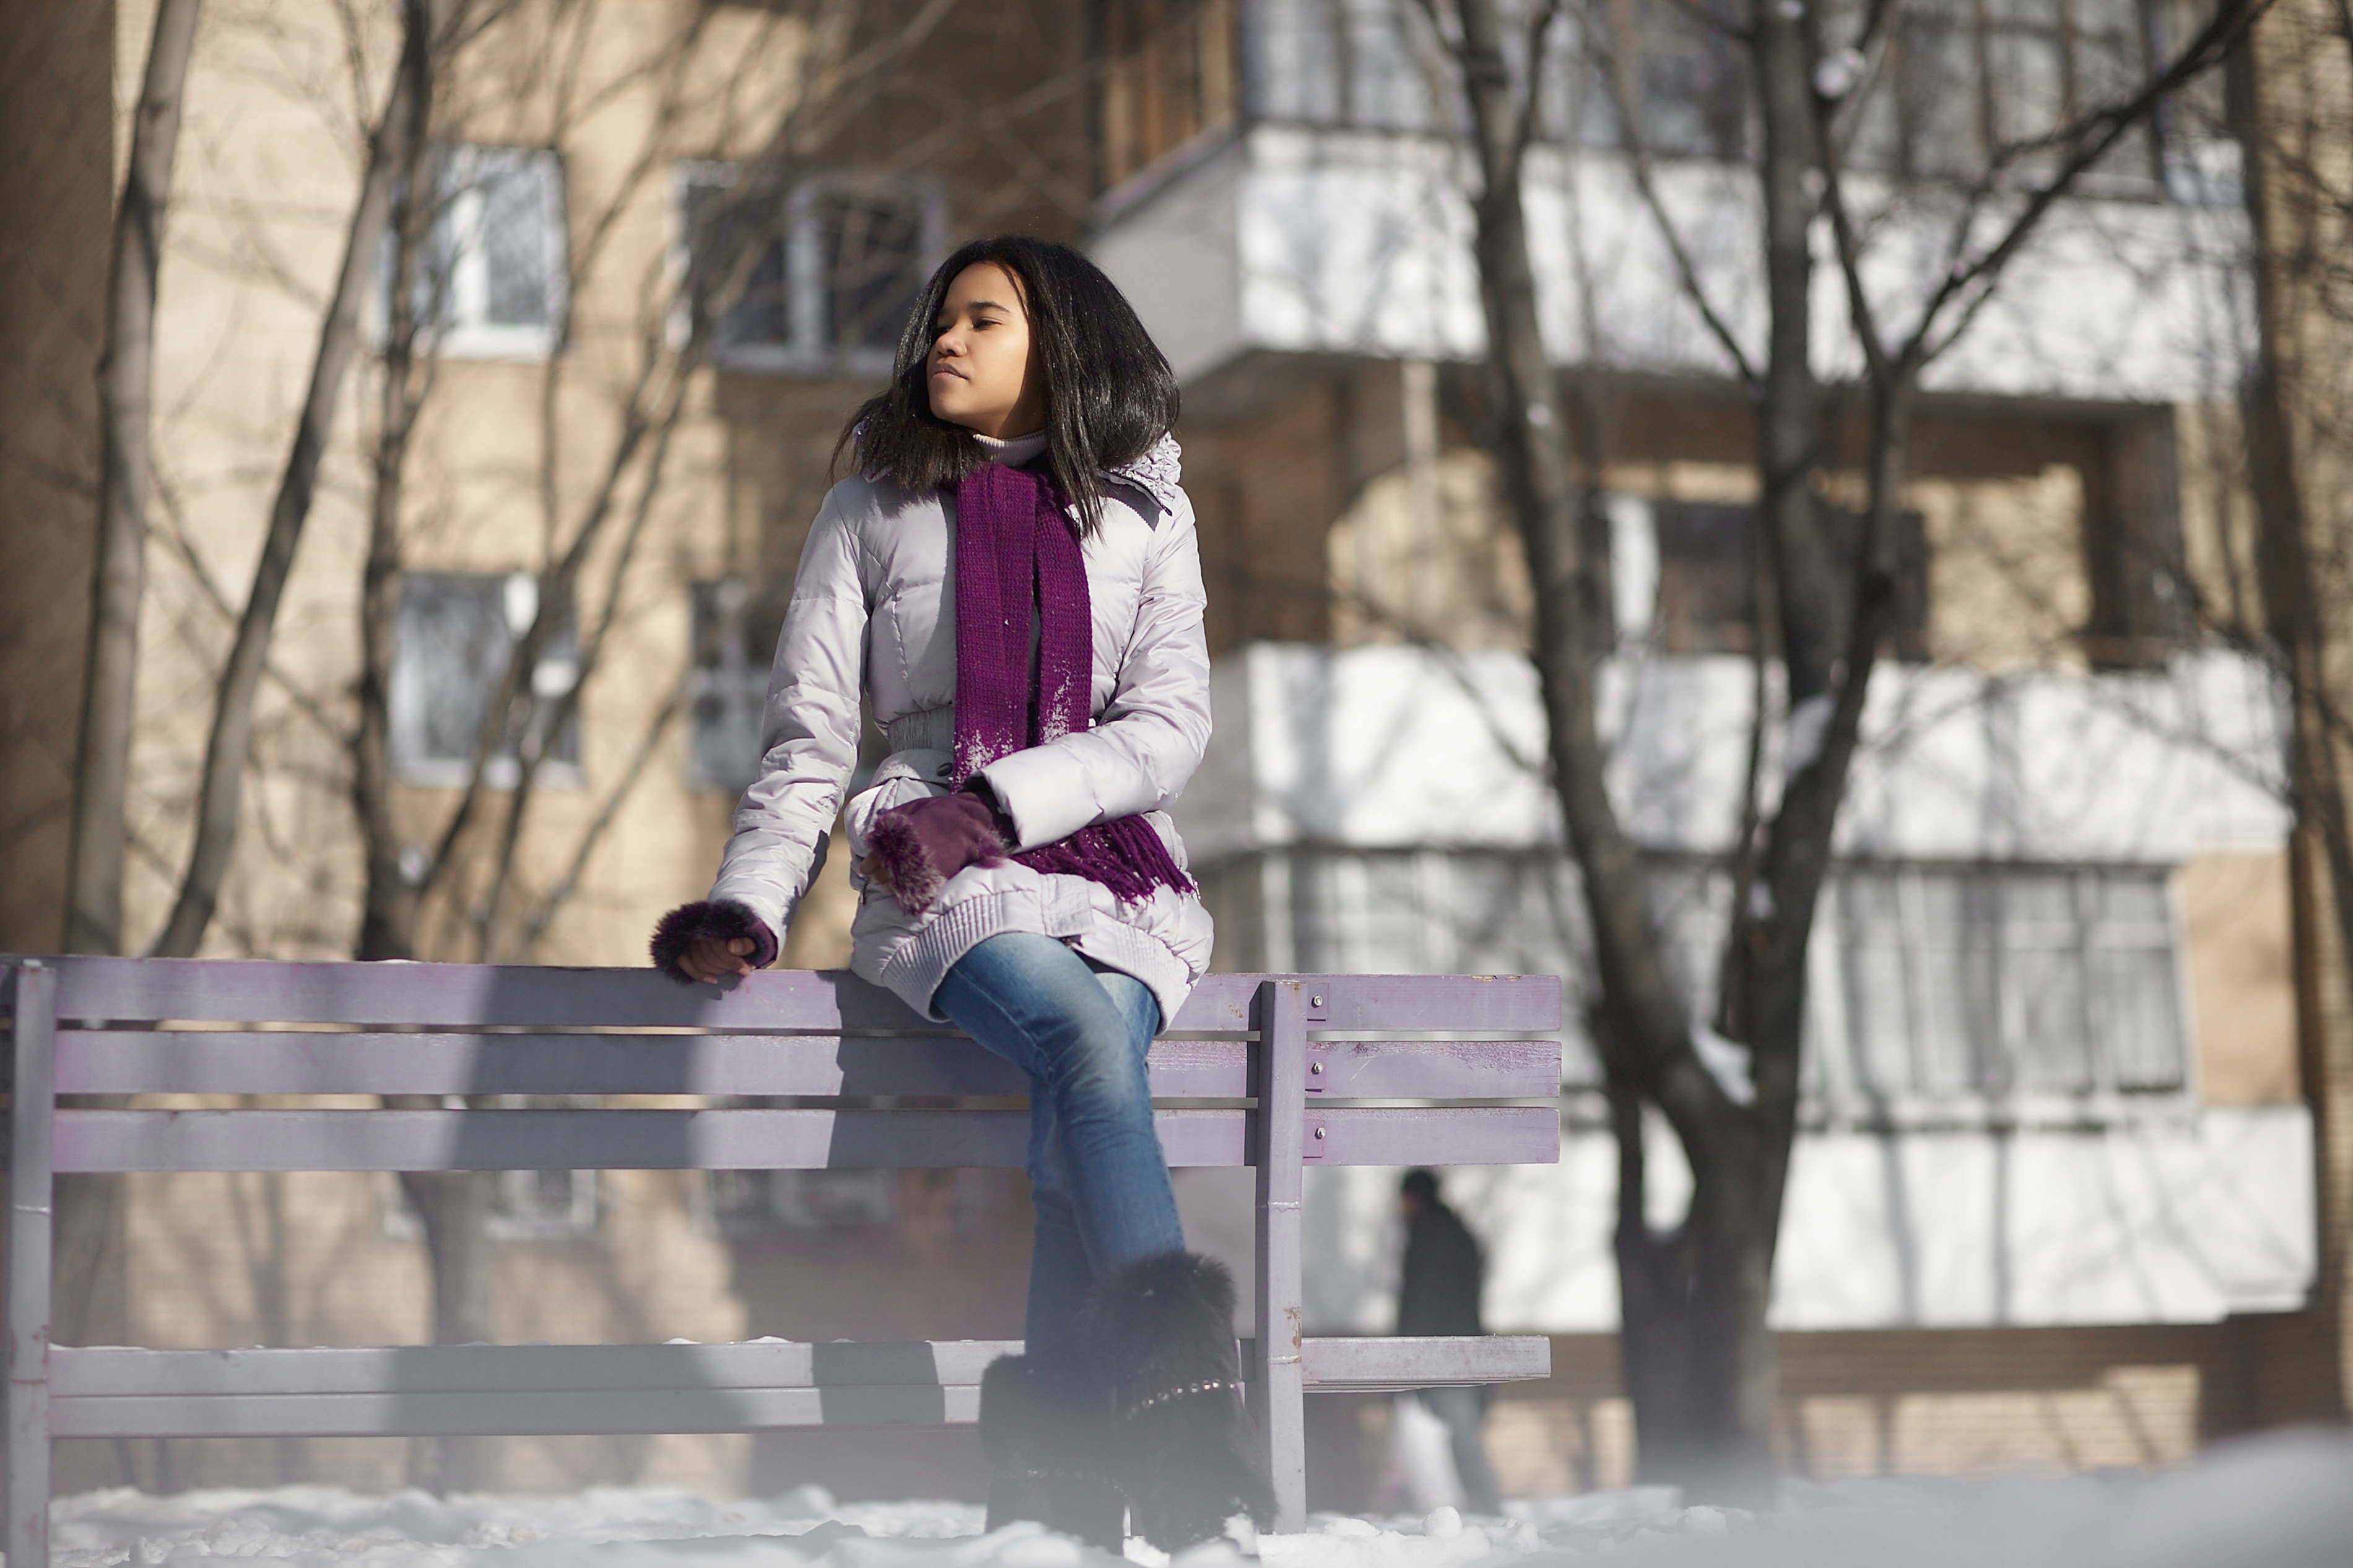 A woman dressed in a winter jacket and scarf, sitting on a park bench.